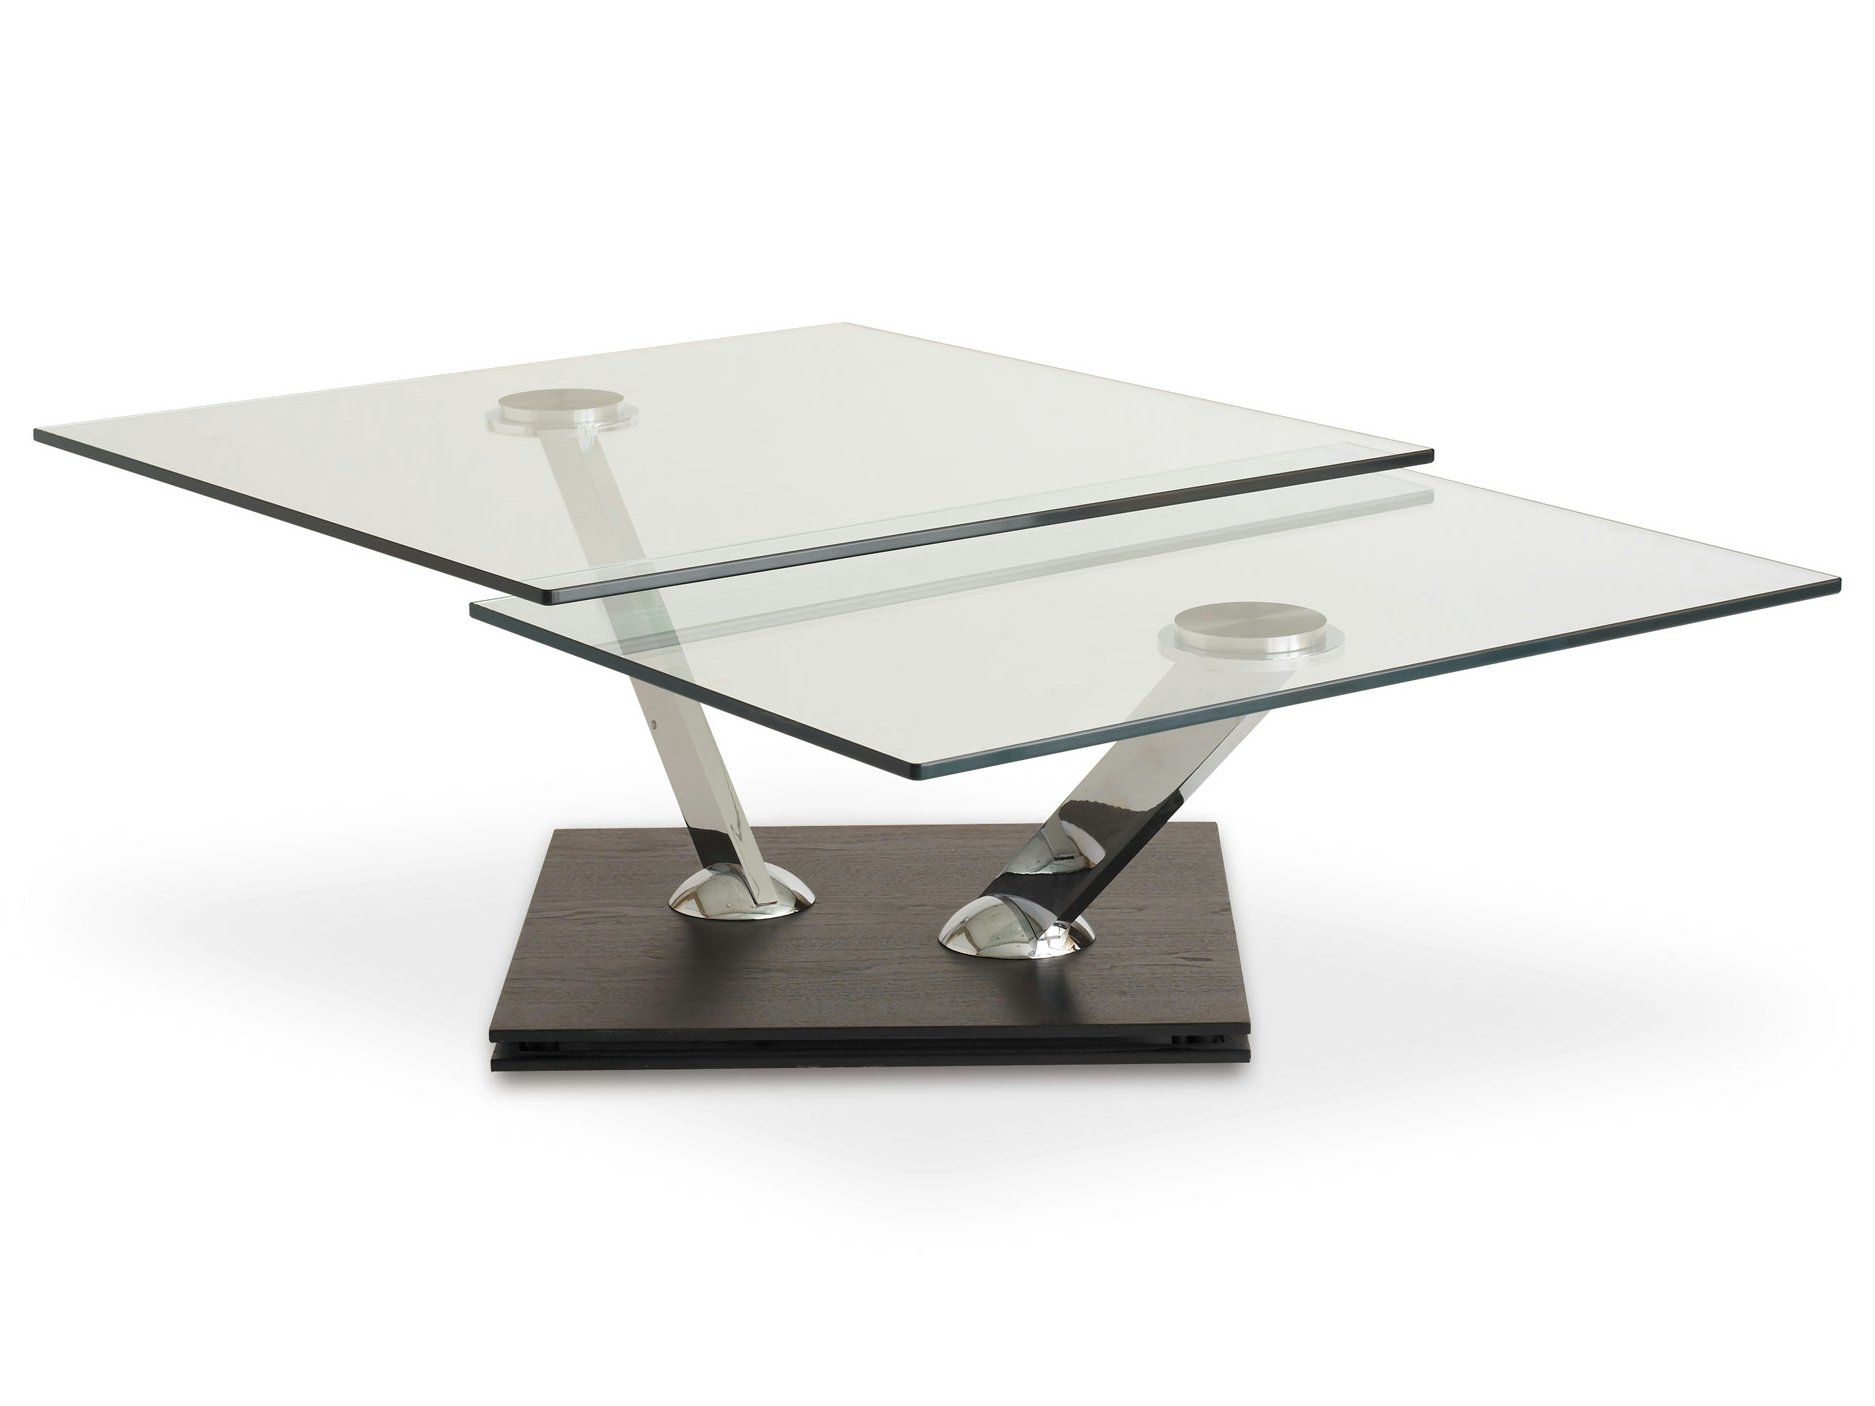 Square coffee table tea time by roche bobois design arnaldo gamba Roche bobois coffee table